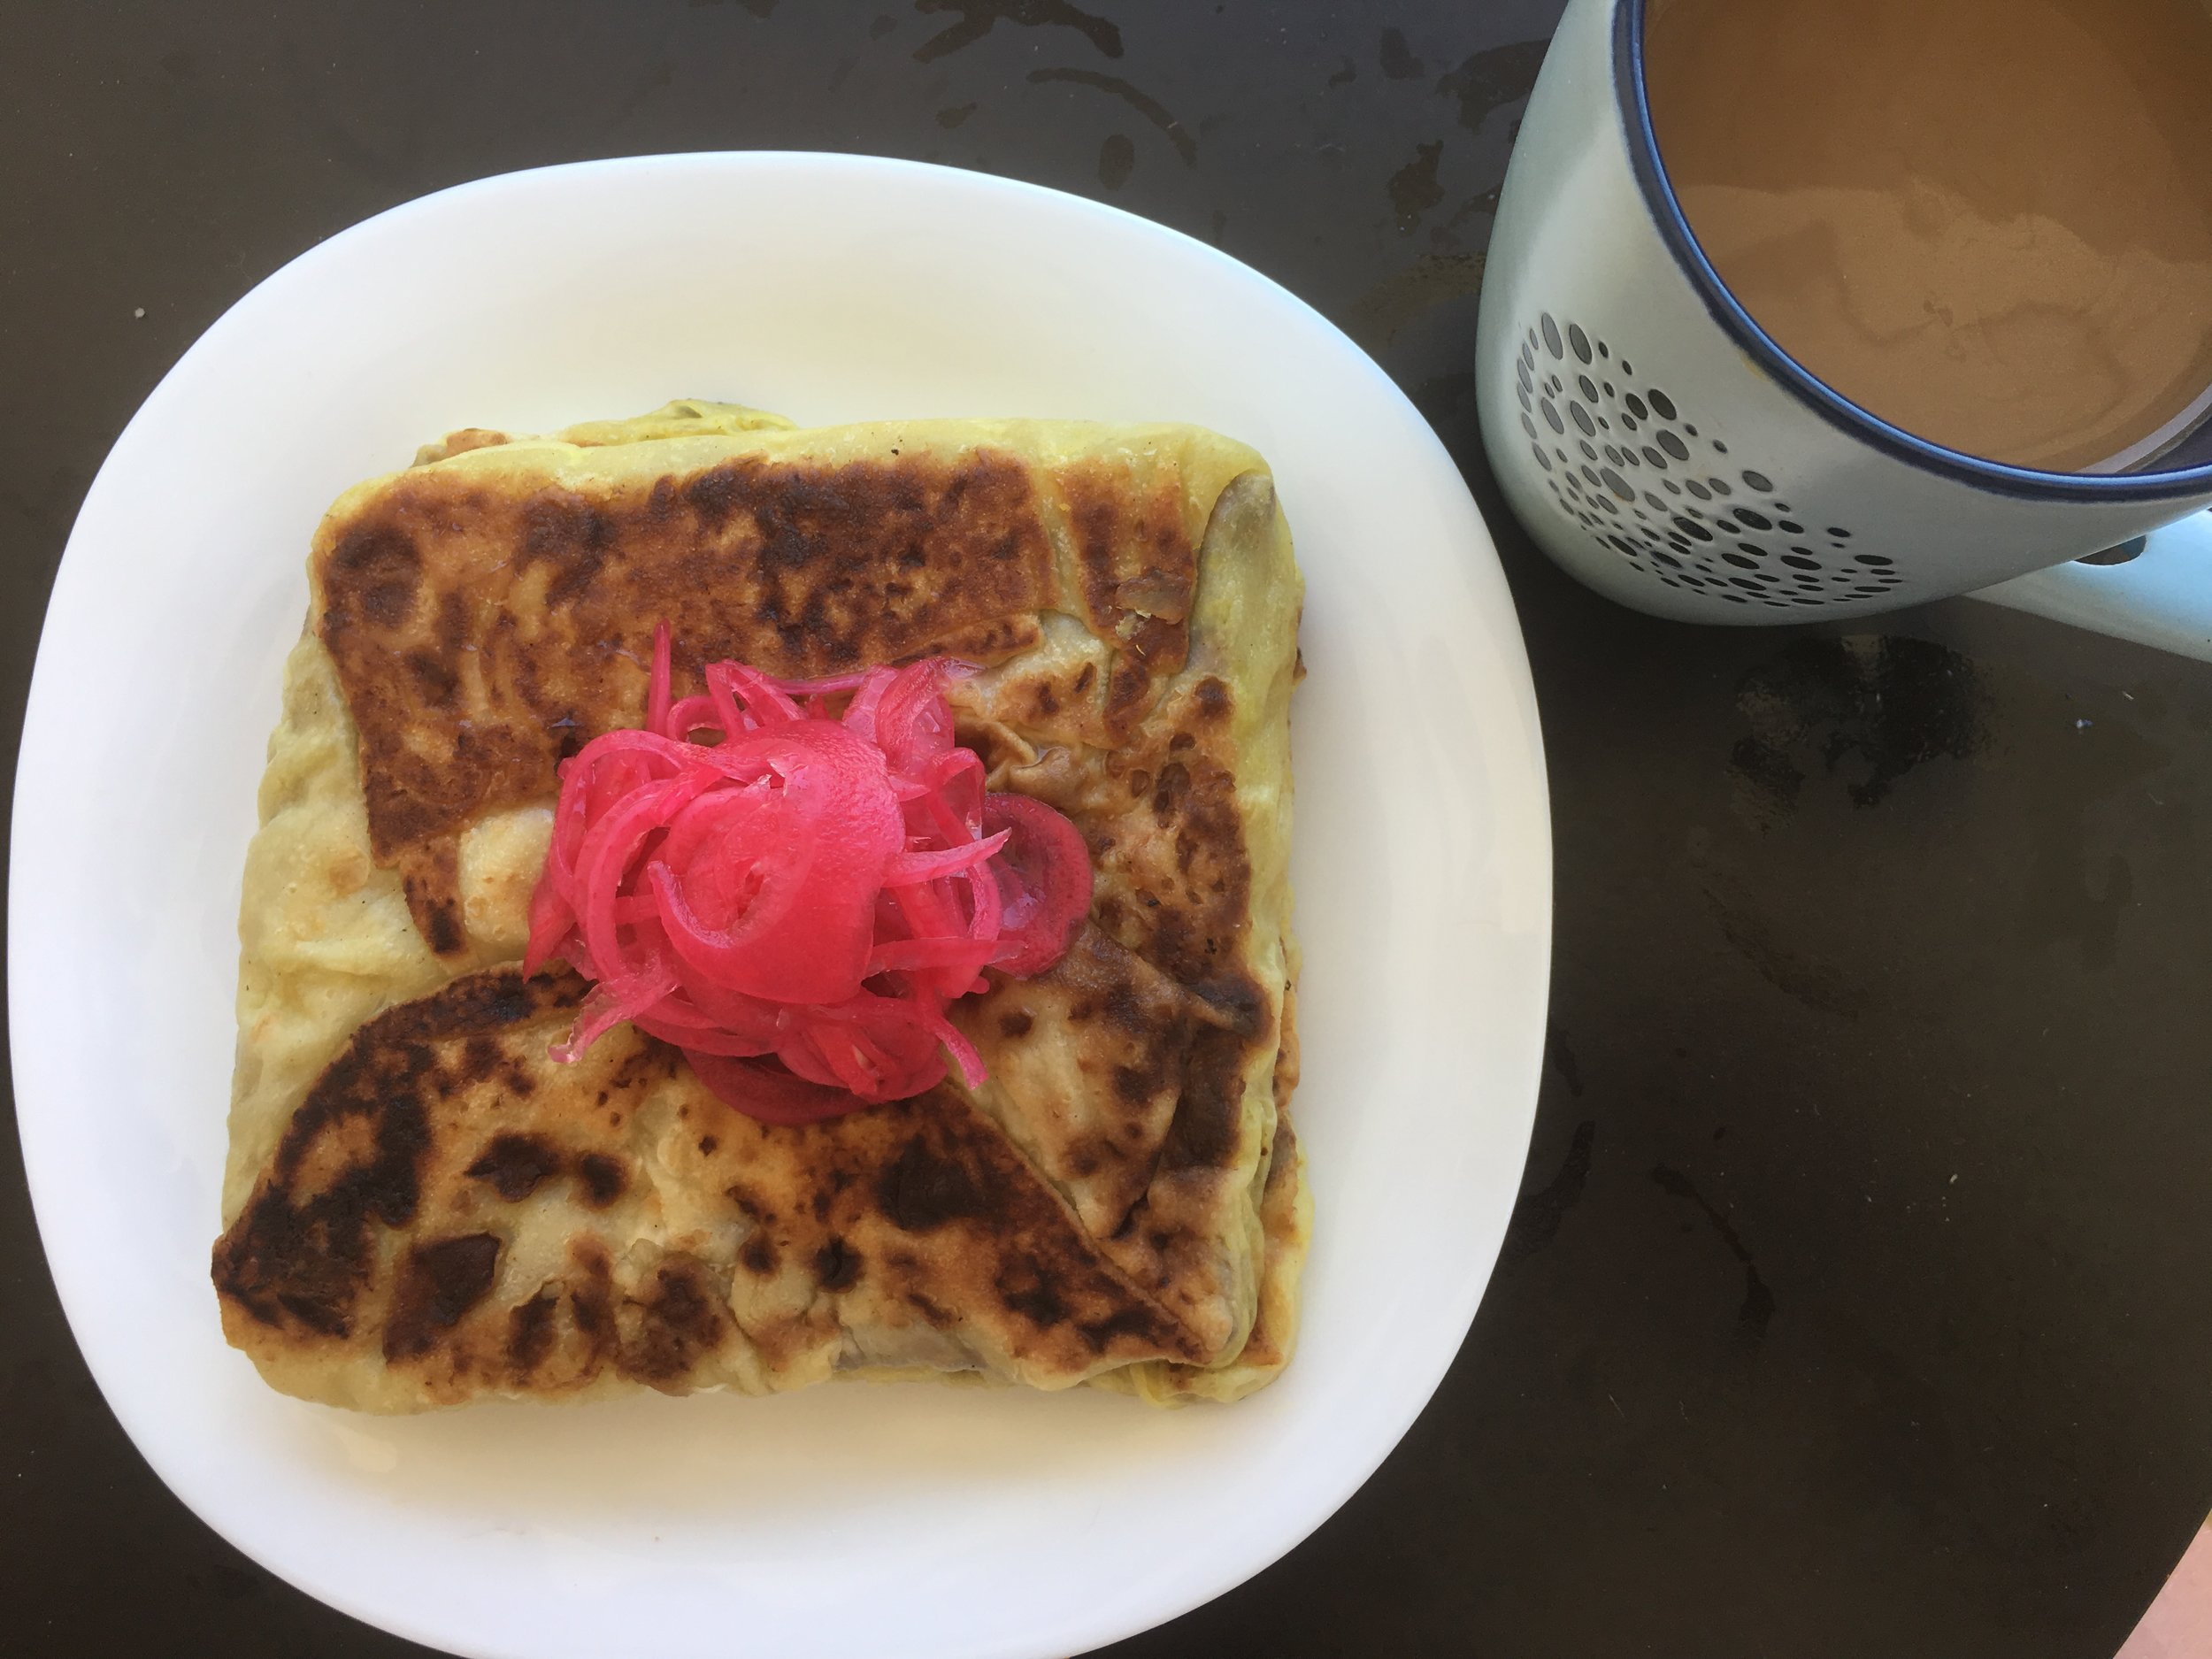 Cold Murtabak with sweet pickled onions for breakfast. Outstanding